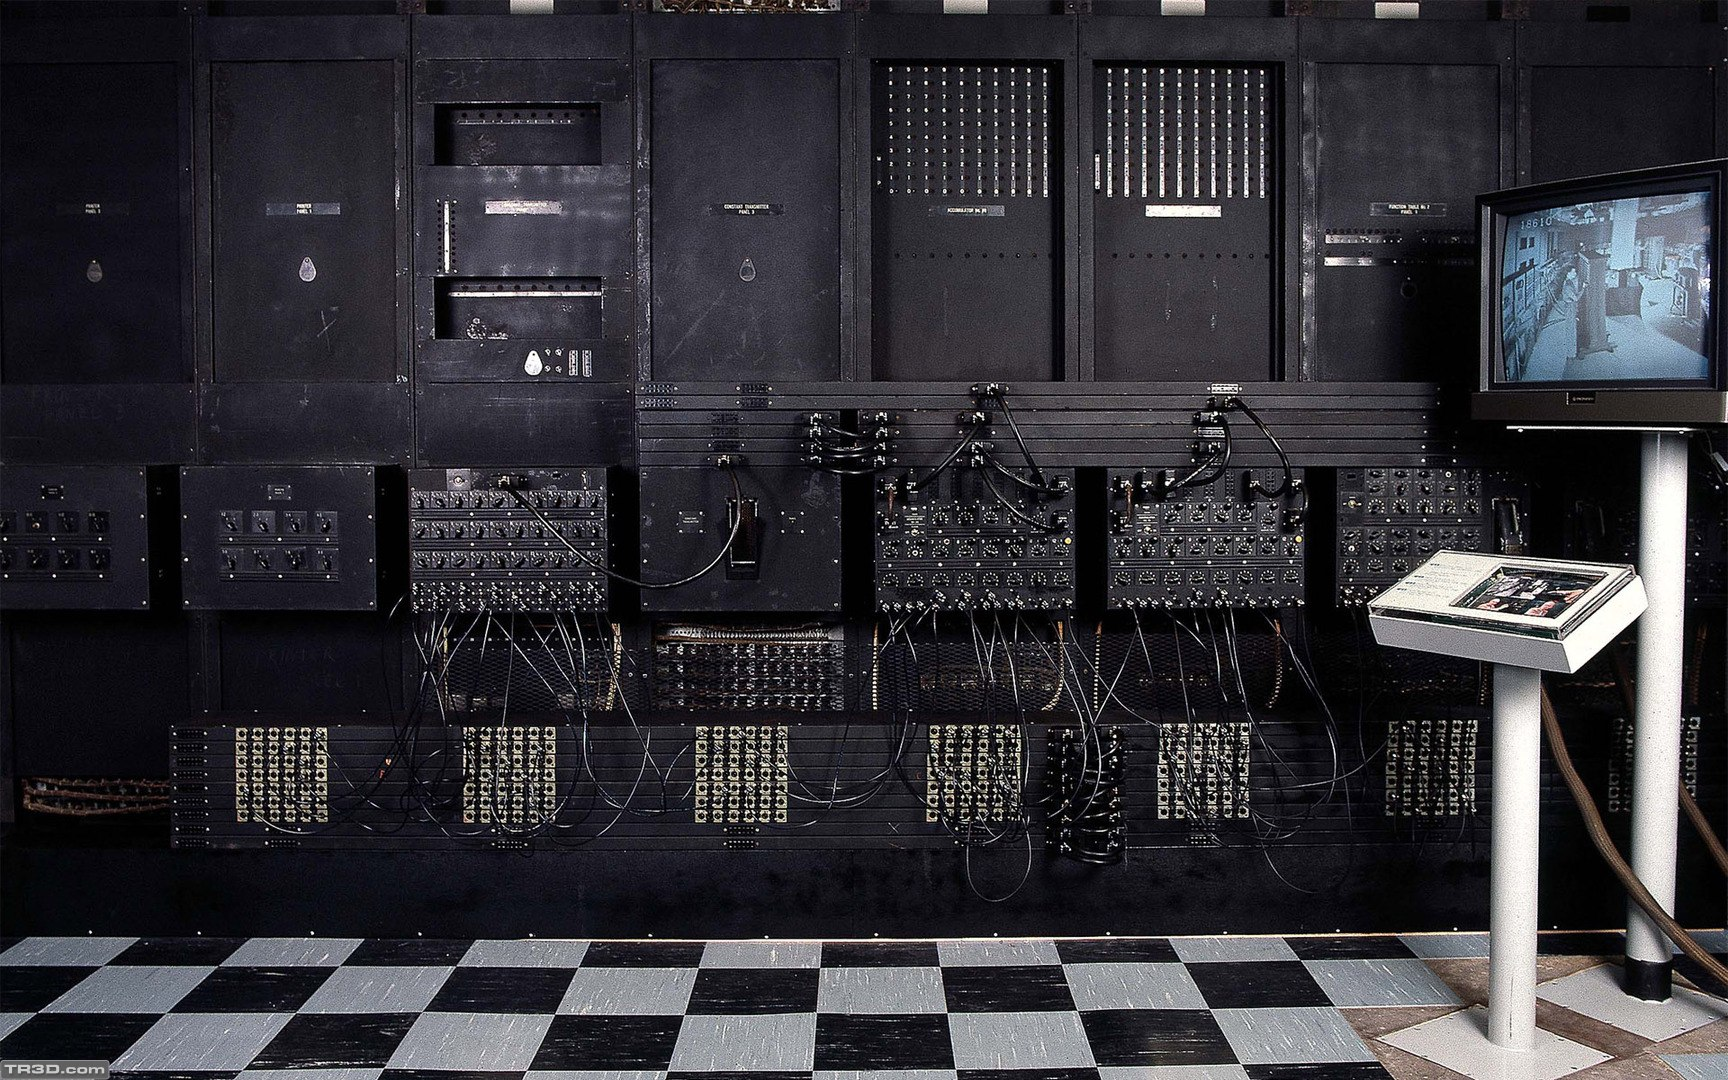 eniac-computers-history